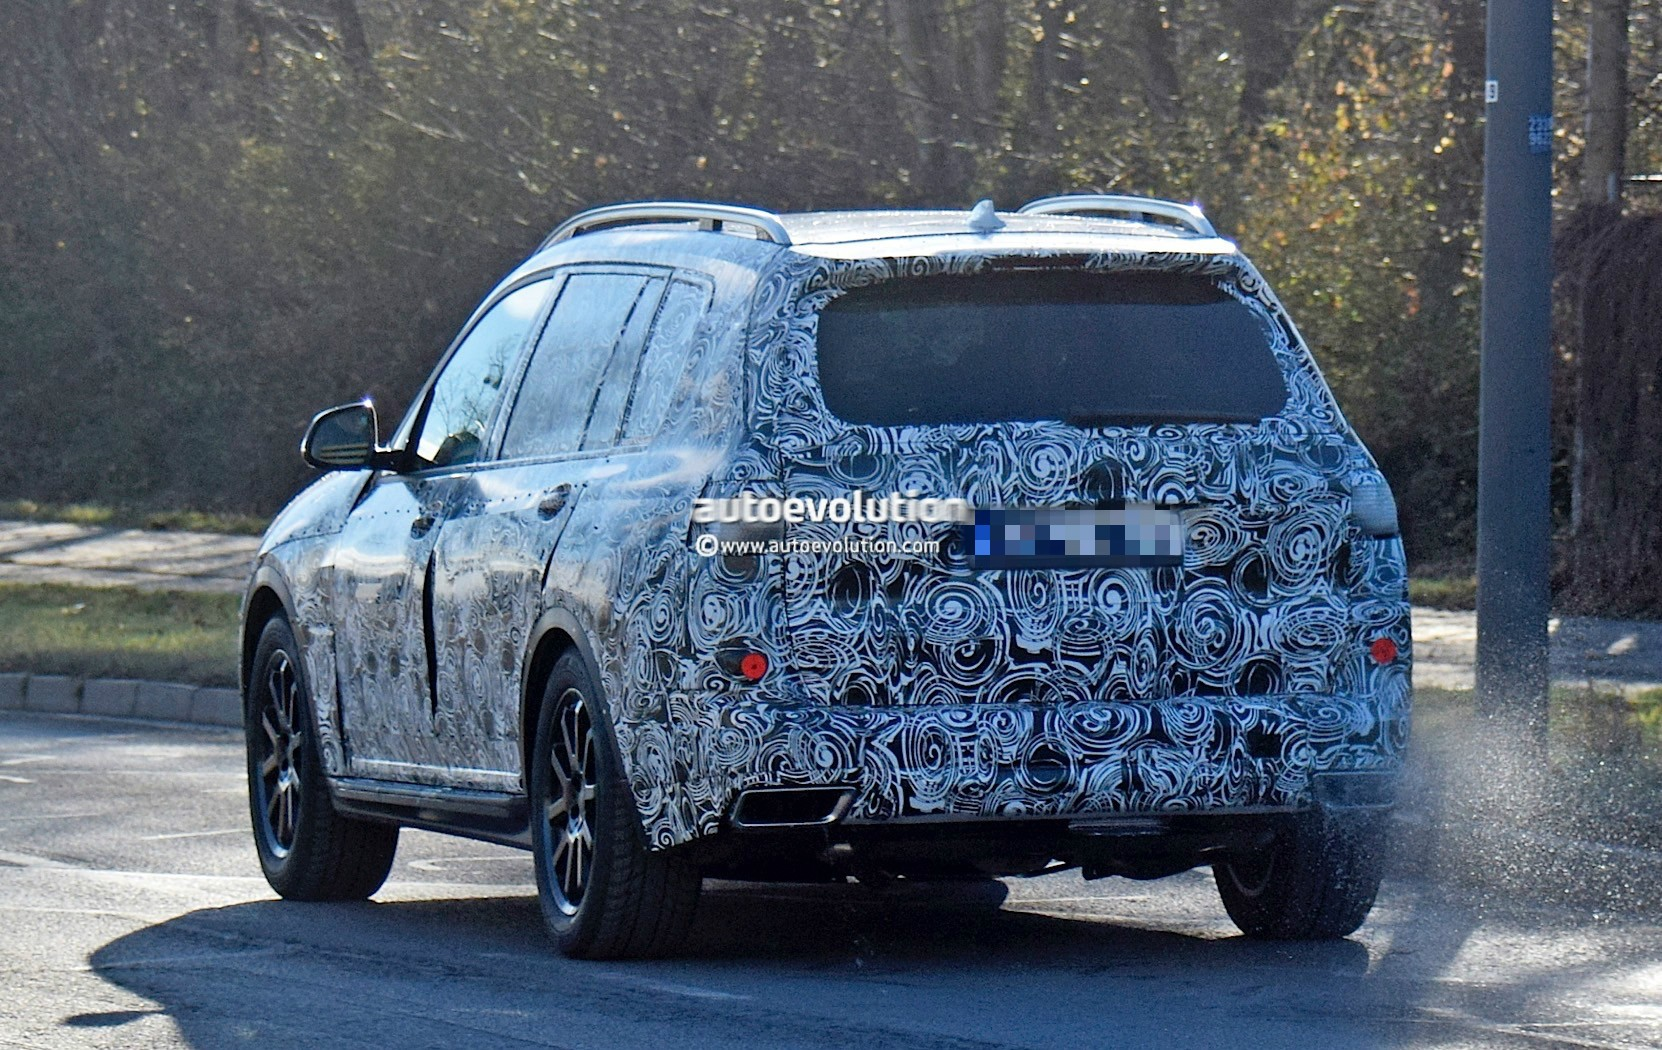 2018 BMW X7 Spied Testing In Closed Compound, Shows Off